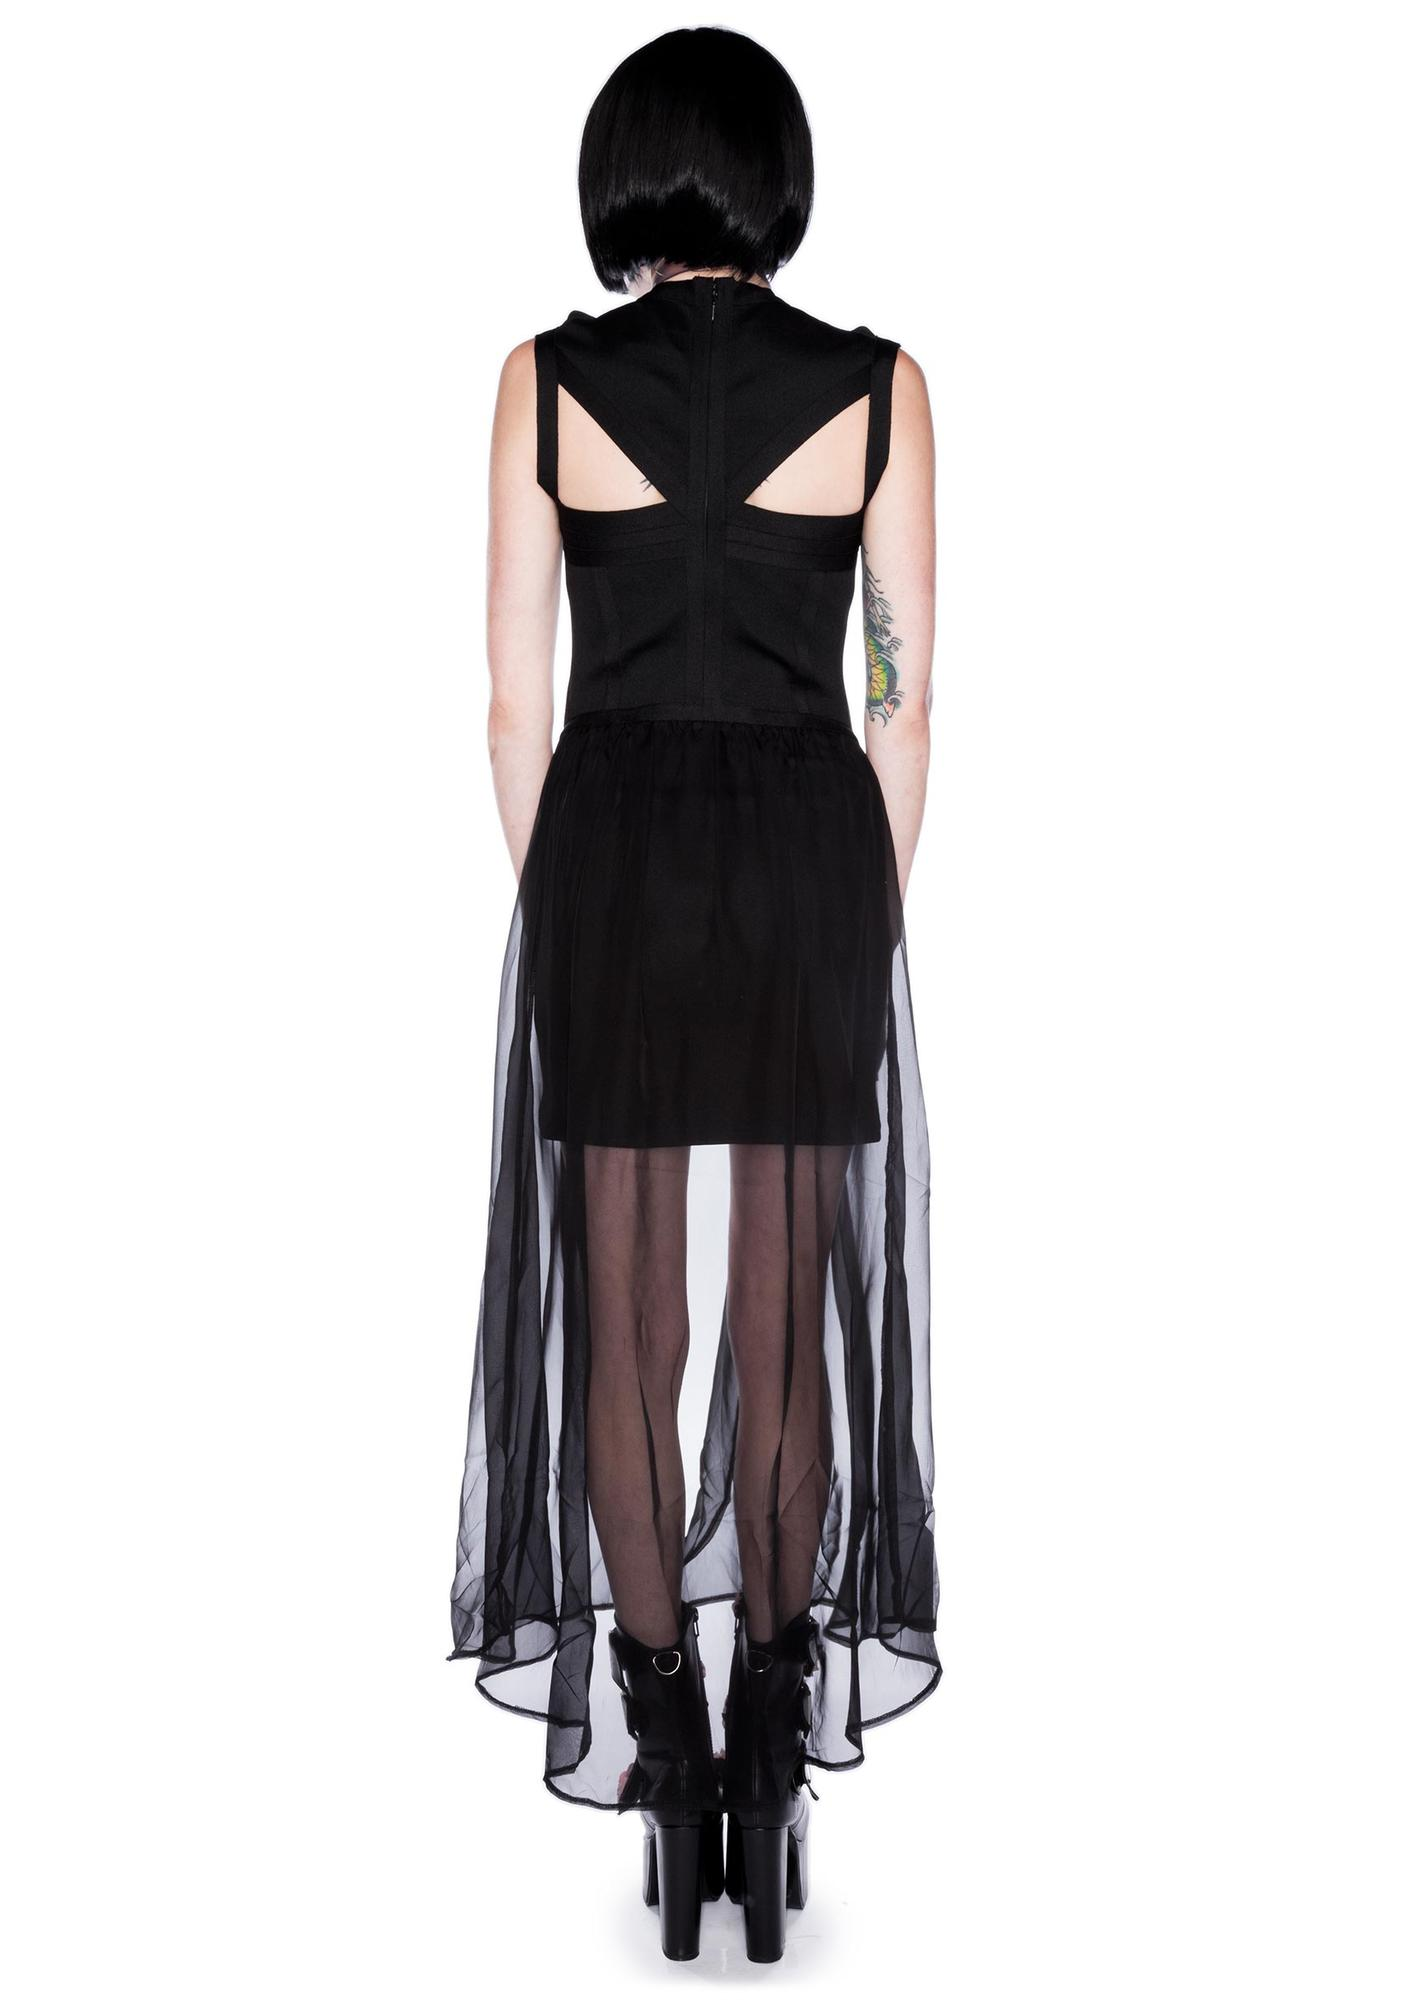 UNIF Godspeed Dress